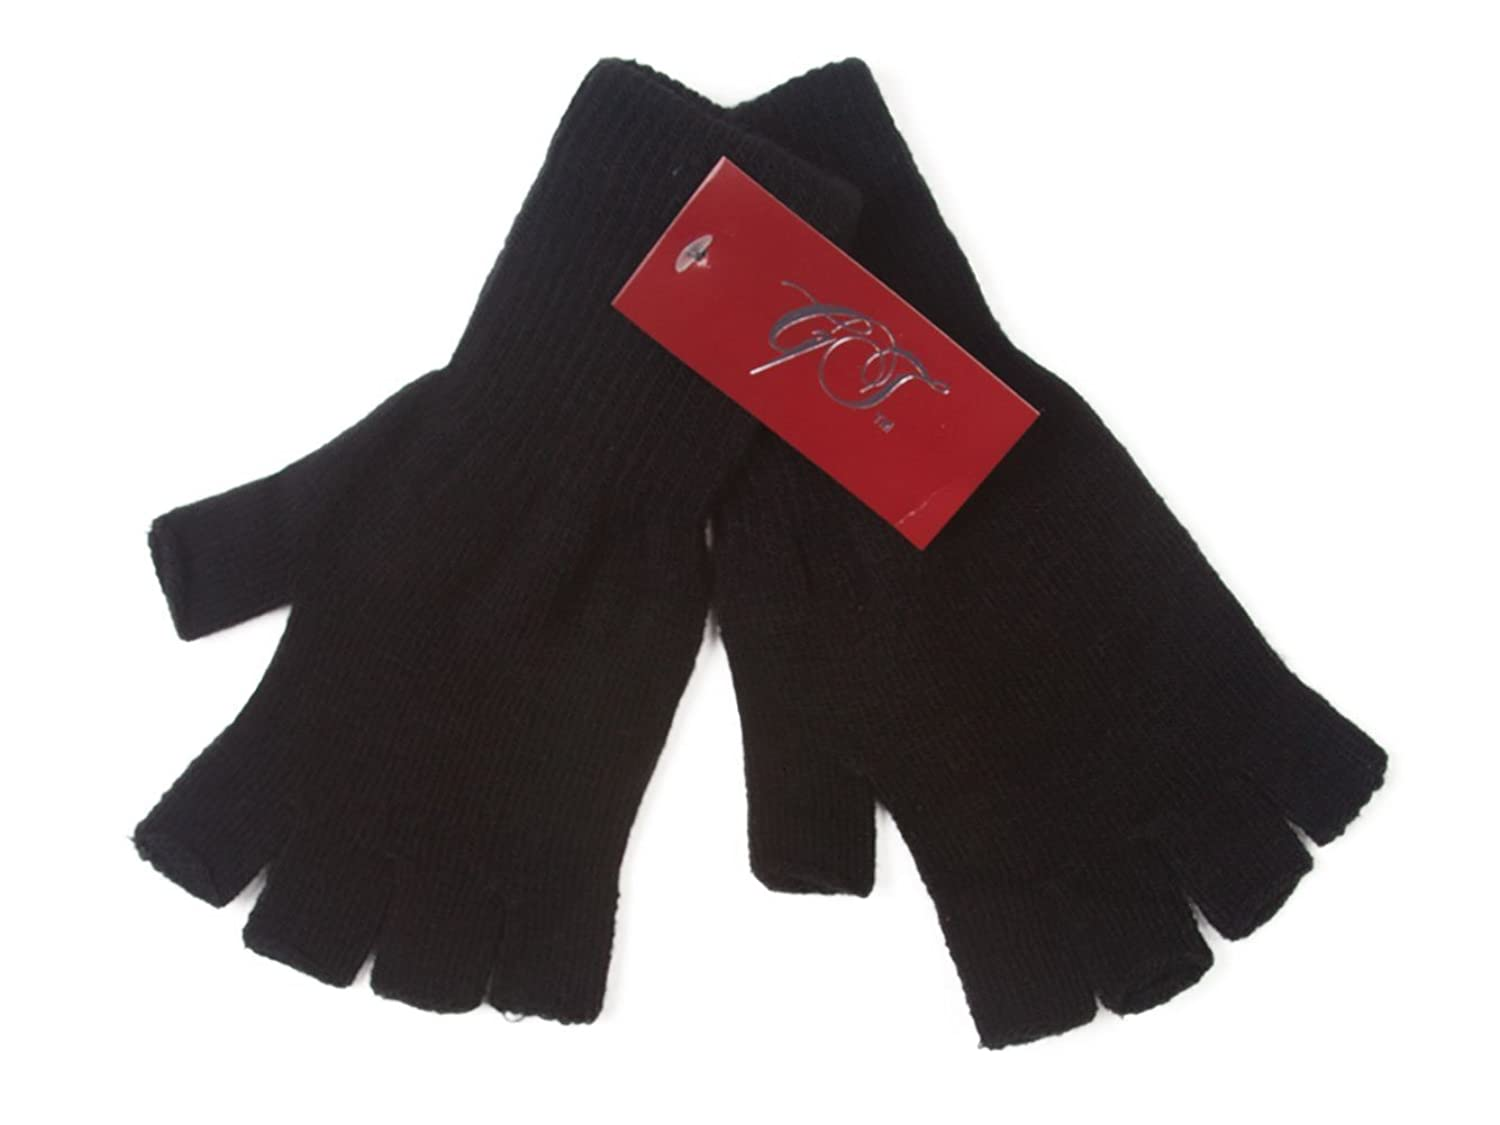 Driving gloves winter - Gravity Threads Unisex Warm Half Finger Stretchy Knit Gloves